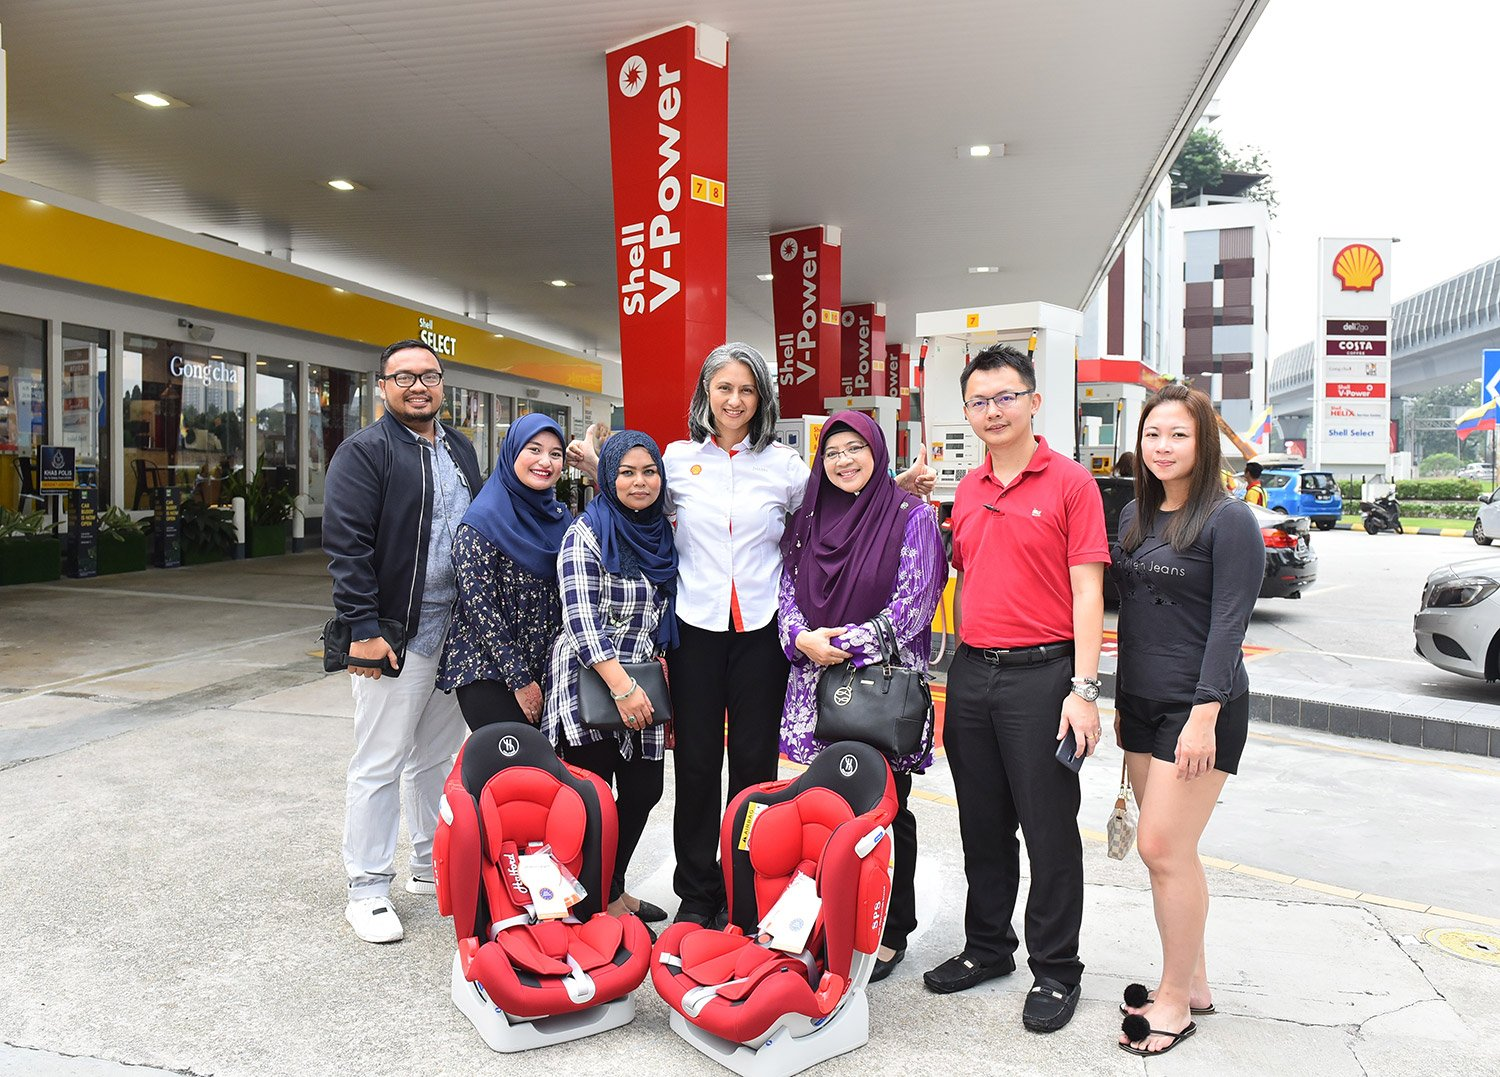 SHELL PROMOTES SAFETY BY REWARDING CUSTOMERS WITH CHILD CAR SEATS